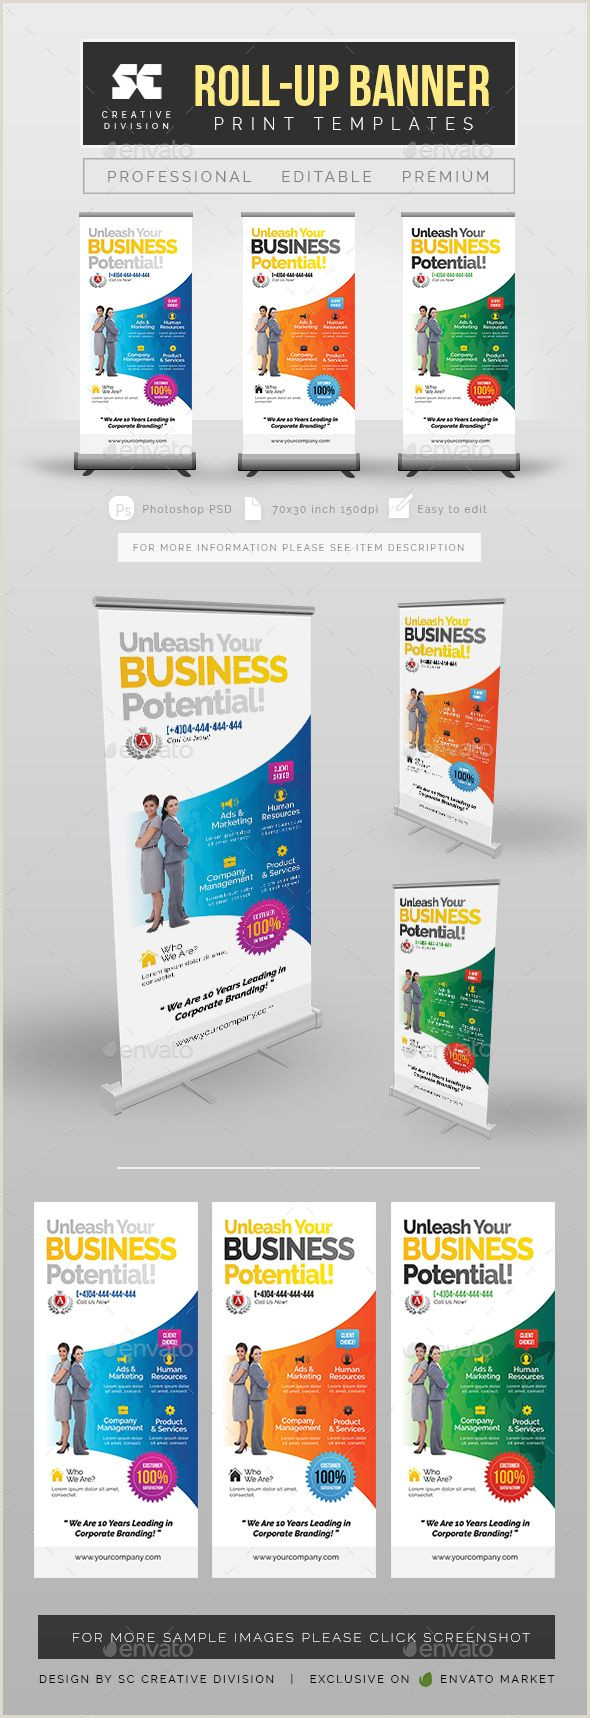 Pop Up Marketing Banners Bud Roll Up Banner